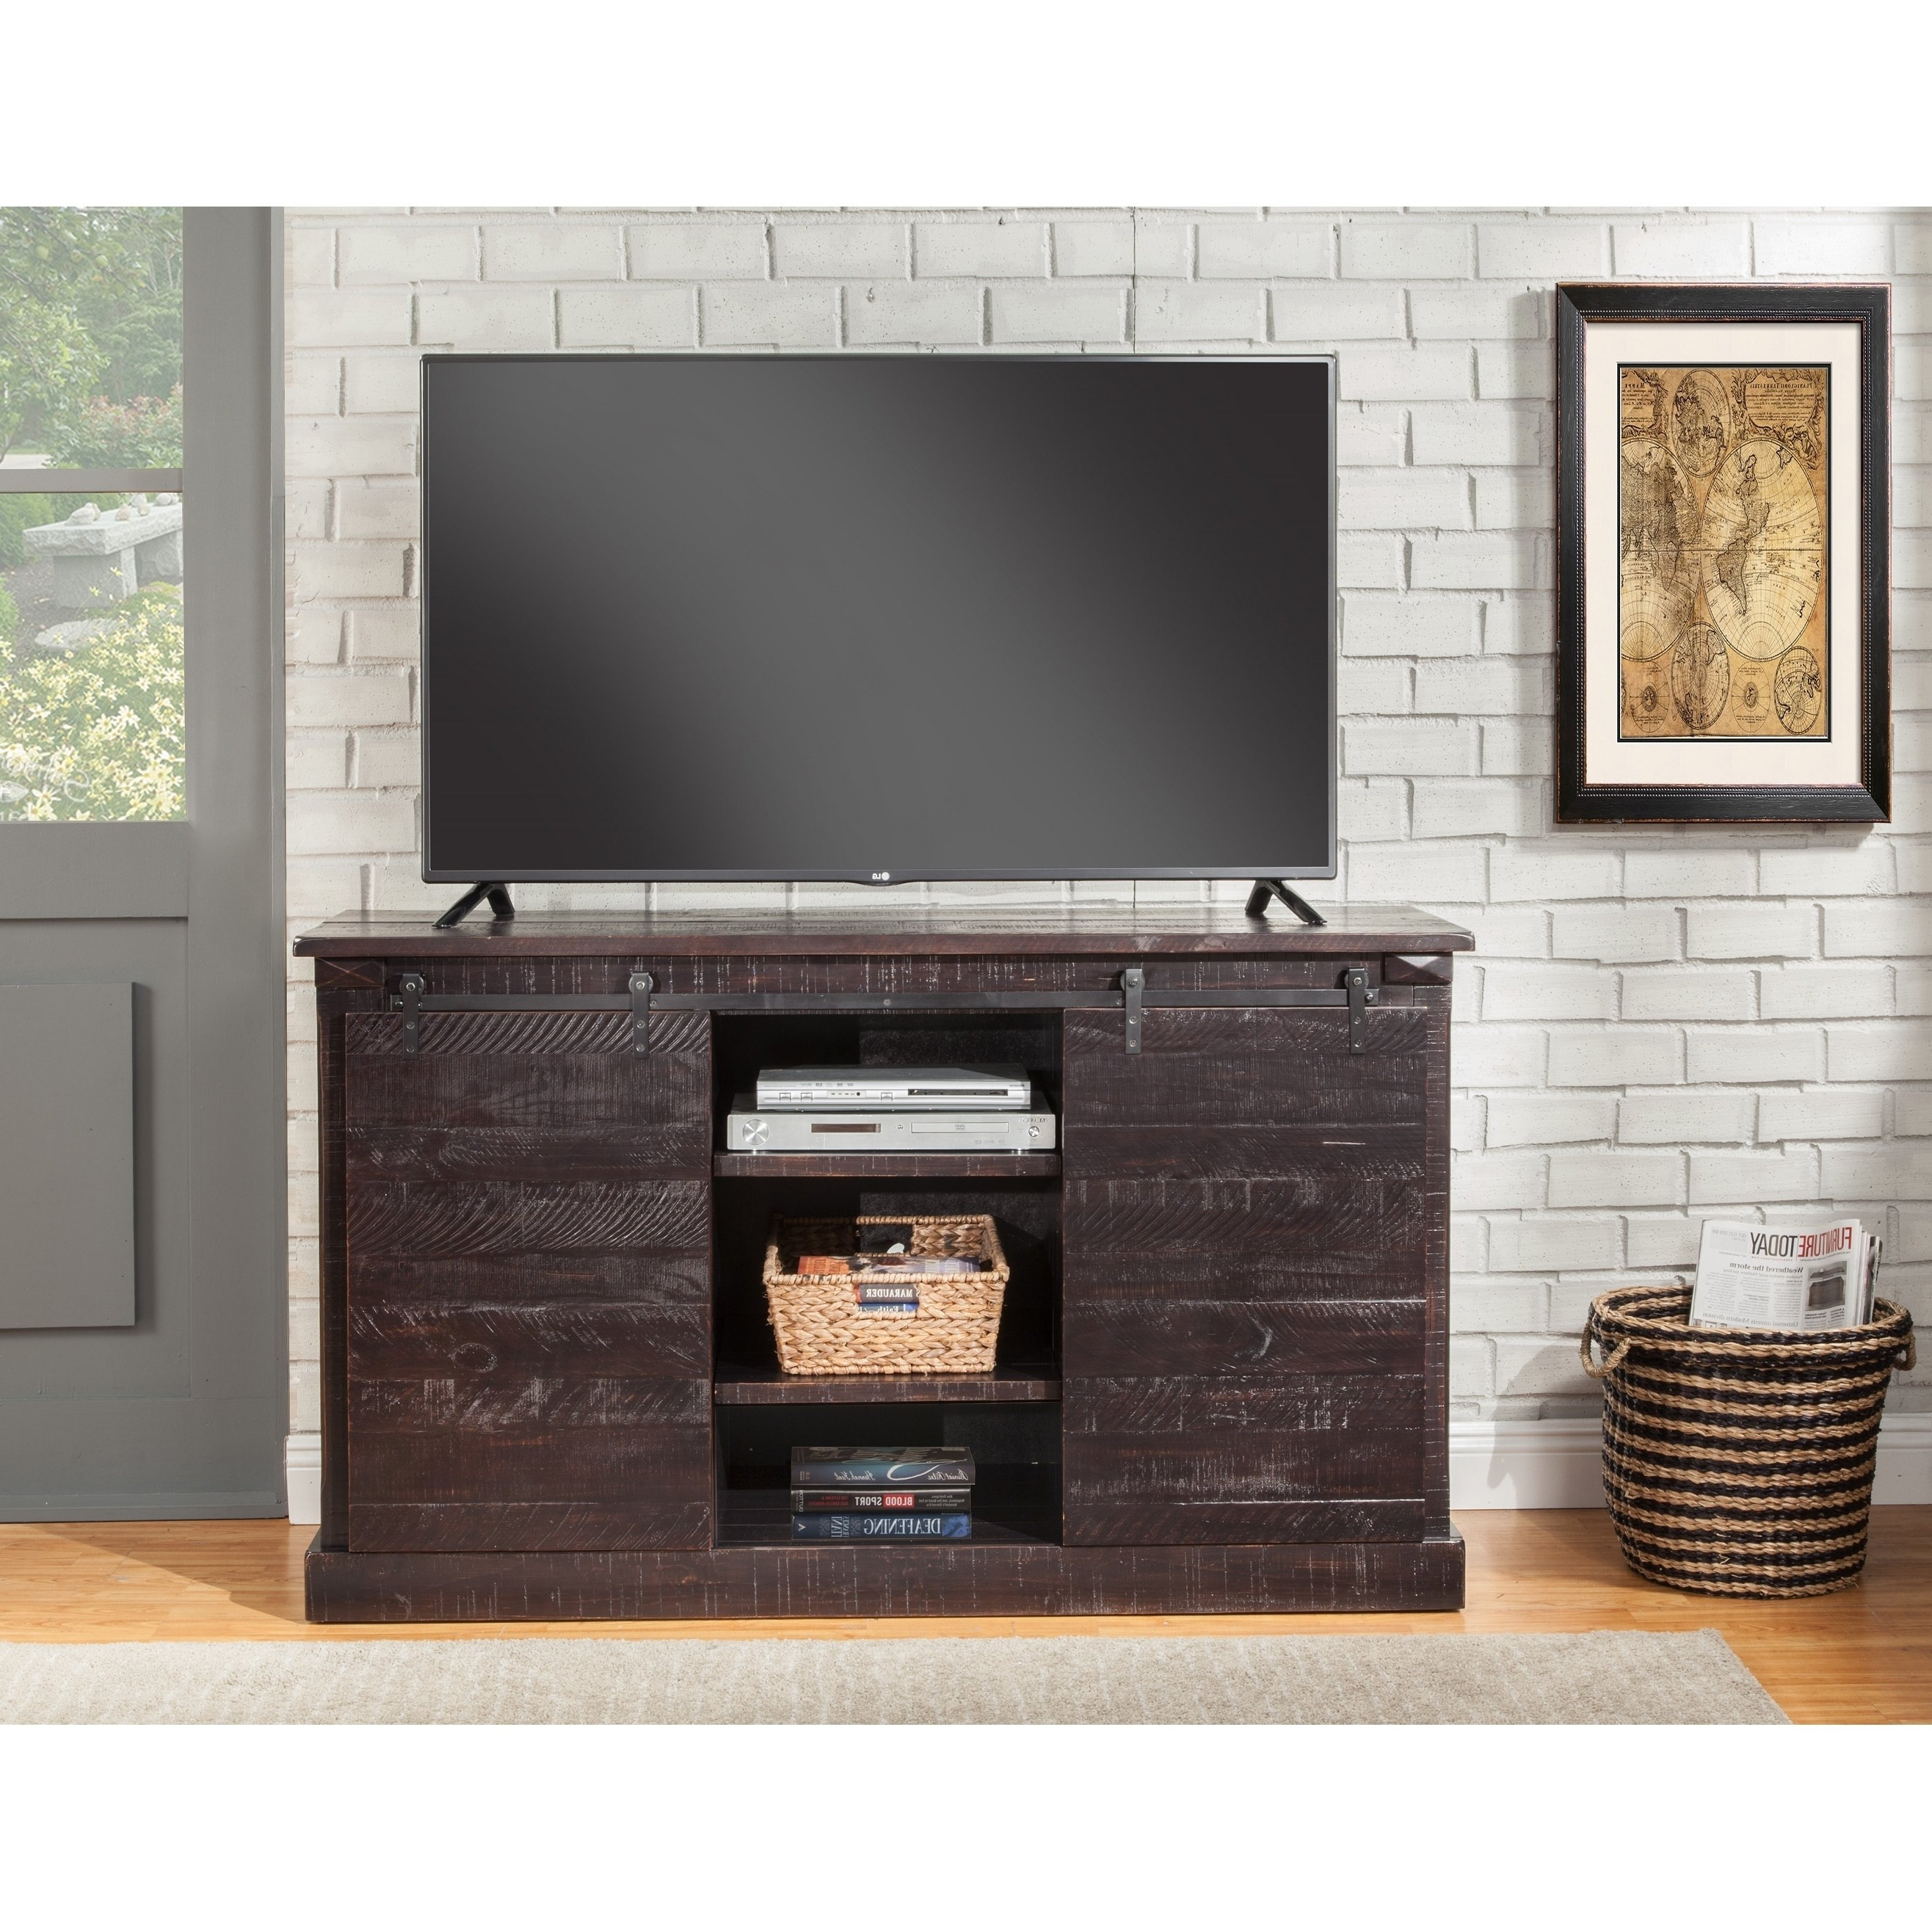 Trendy Wakefield 97 Inch Tv Stands Intended For Buy Black, Rustic Tv Stands & Entertainment Centers Online At (View 13 of 20)